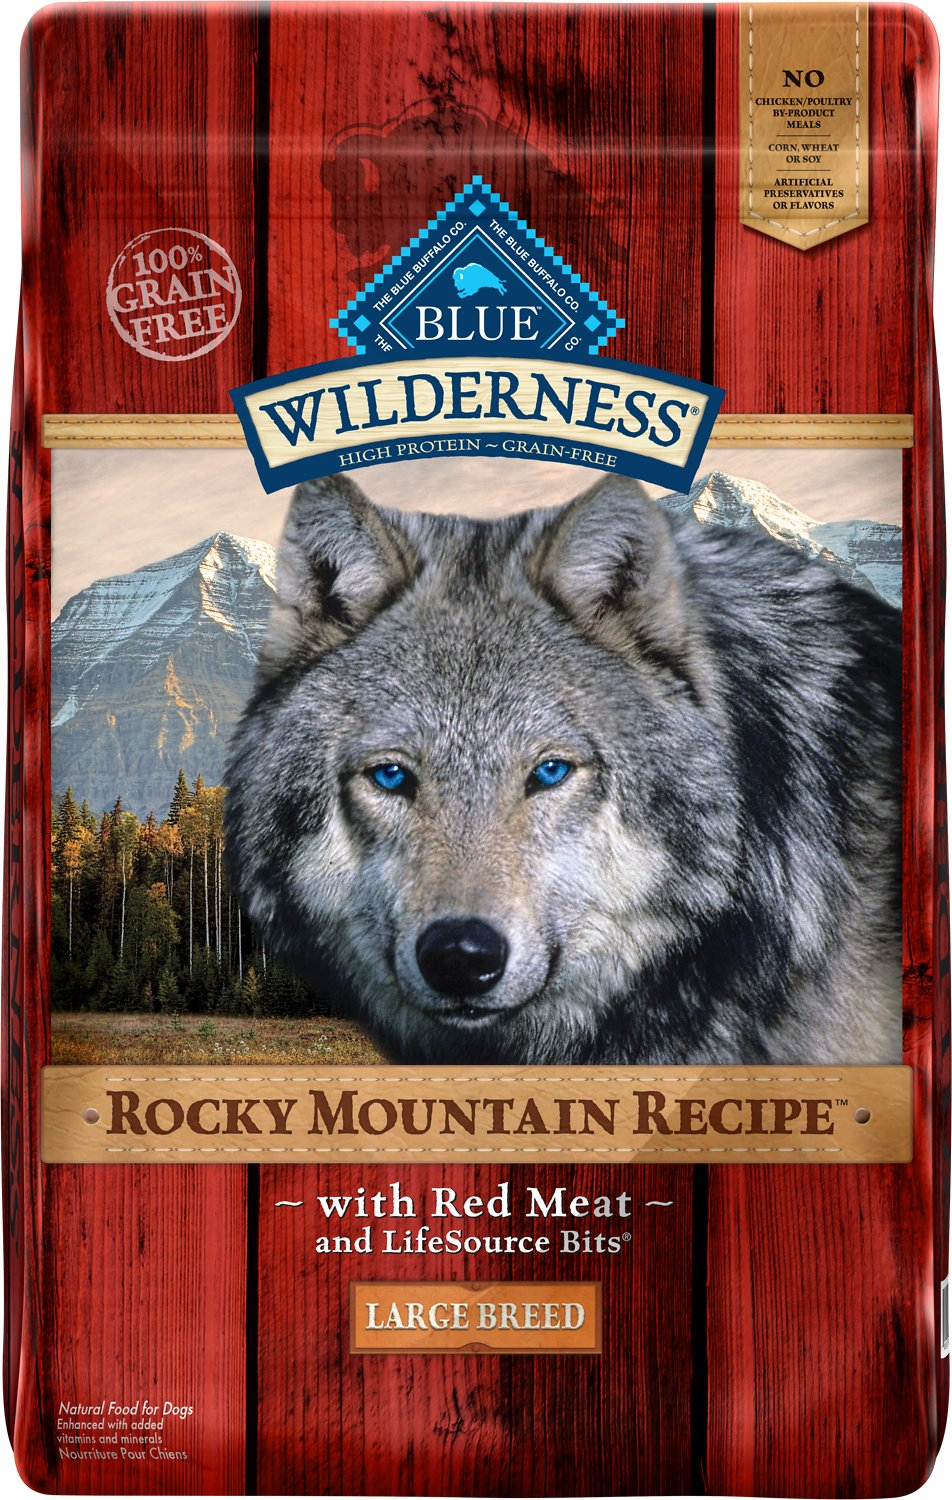 Blue Buffalo Wilderness Rocky Mountain Recipe with Red Meat Large Breed Grain-Free Dry Dog Food, 22-lb bag